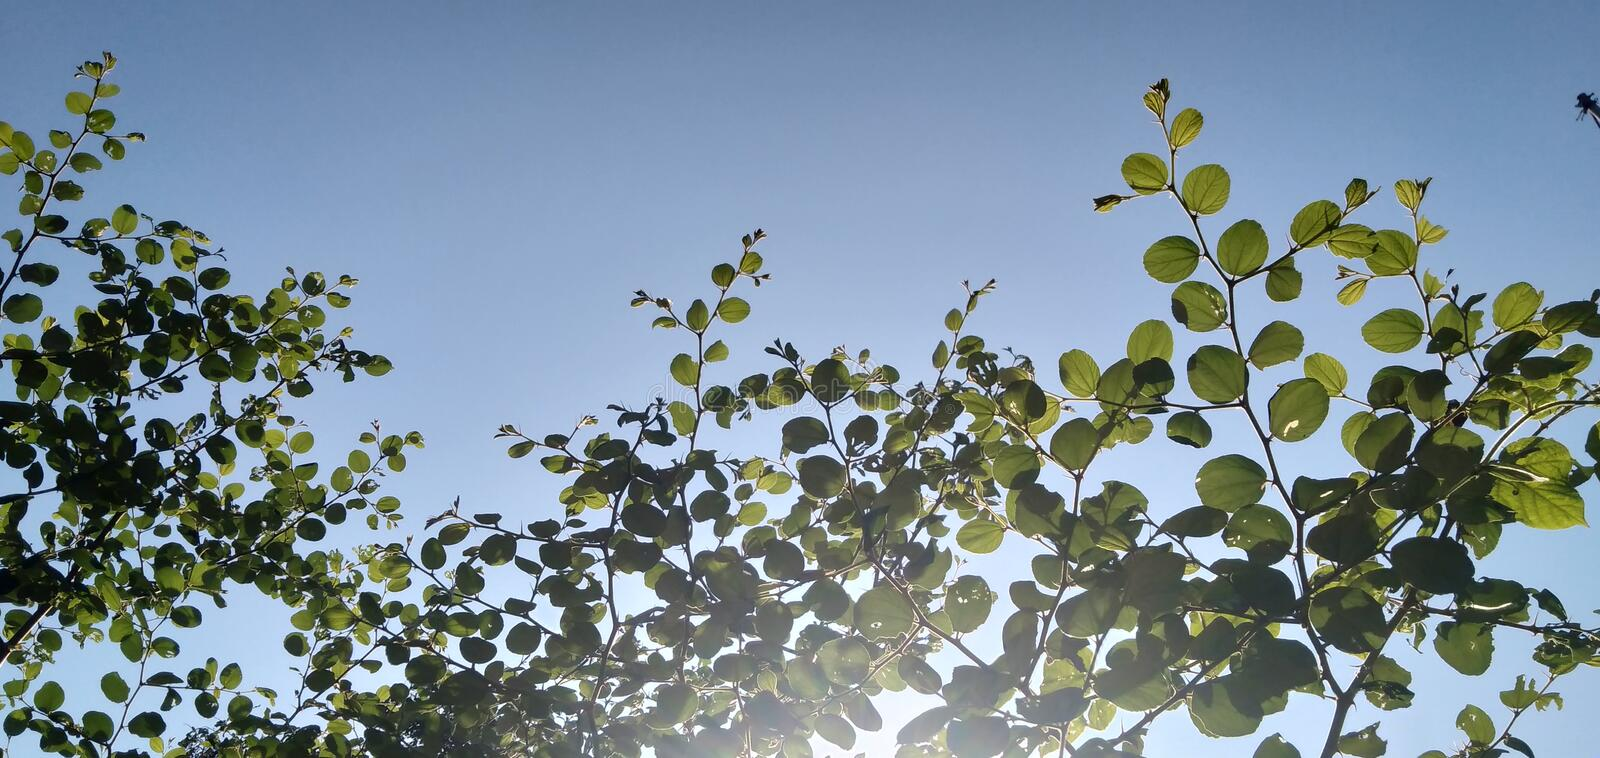 The bidara tree looks from below with a backdrop of sunshine. Green, flare, silhouette, morning, garden, therapy, plant, outdoor, park, herb, medicine royalty free stock photos